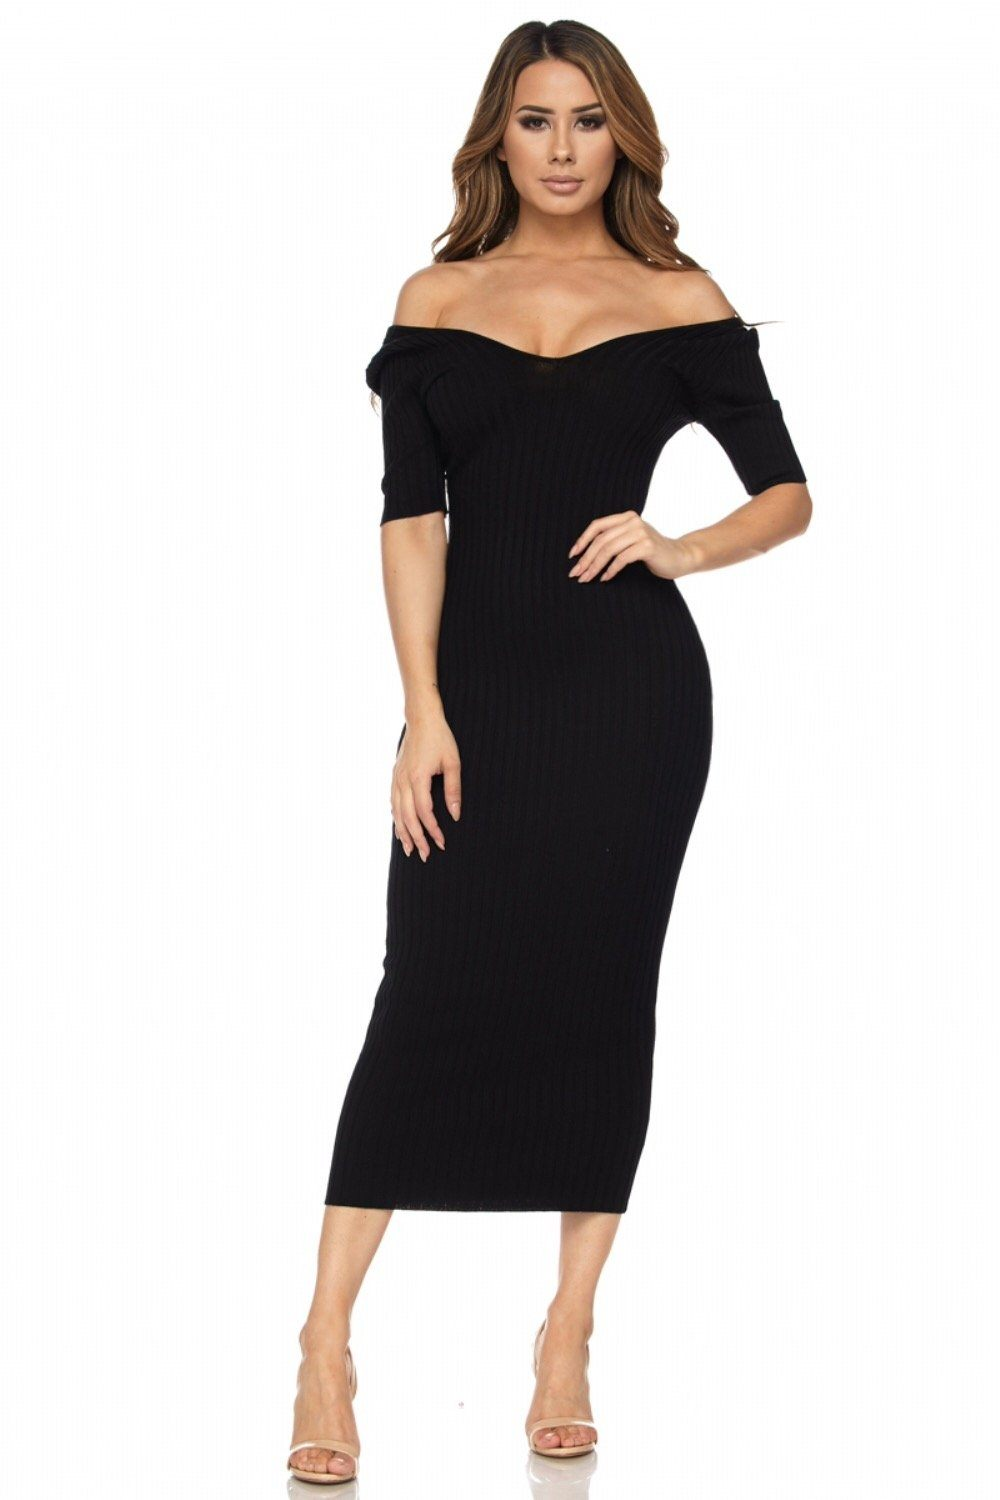 Khloe Half Sleeve Off The Shoulder Ribbed Midi Dress